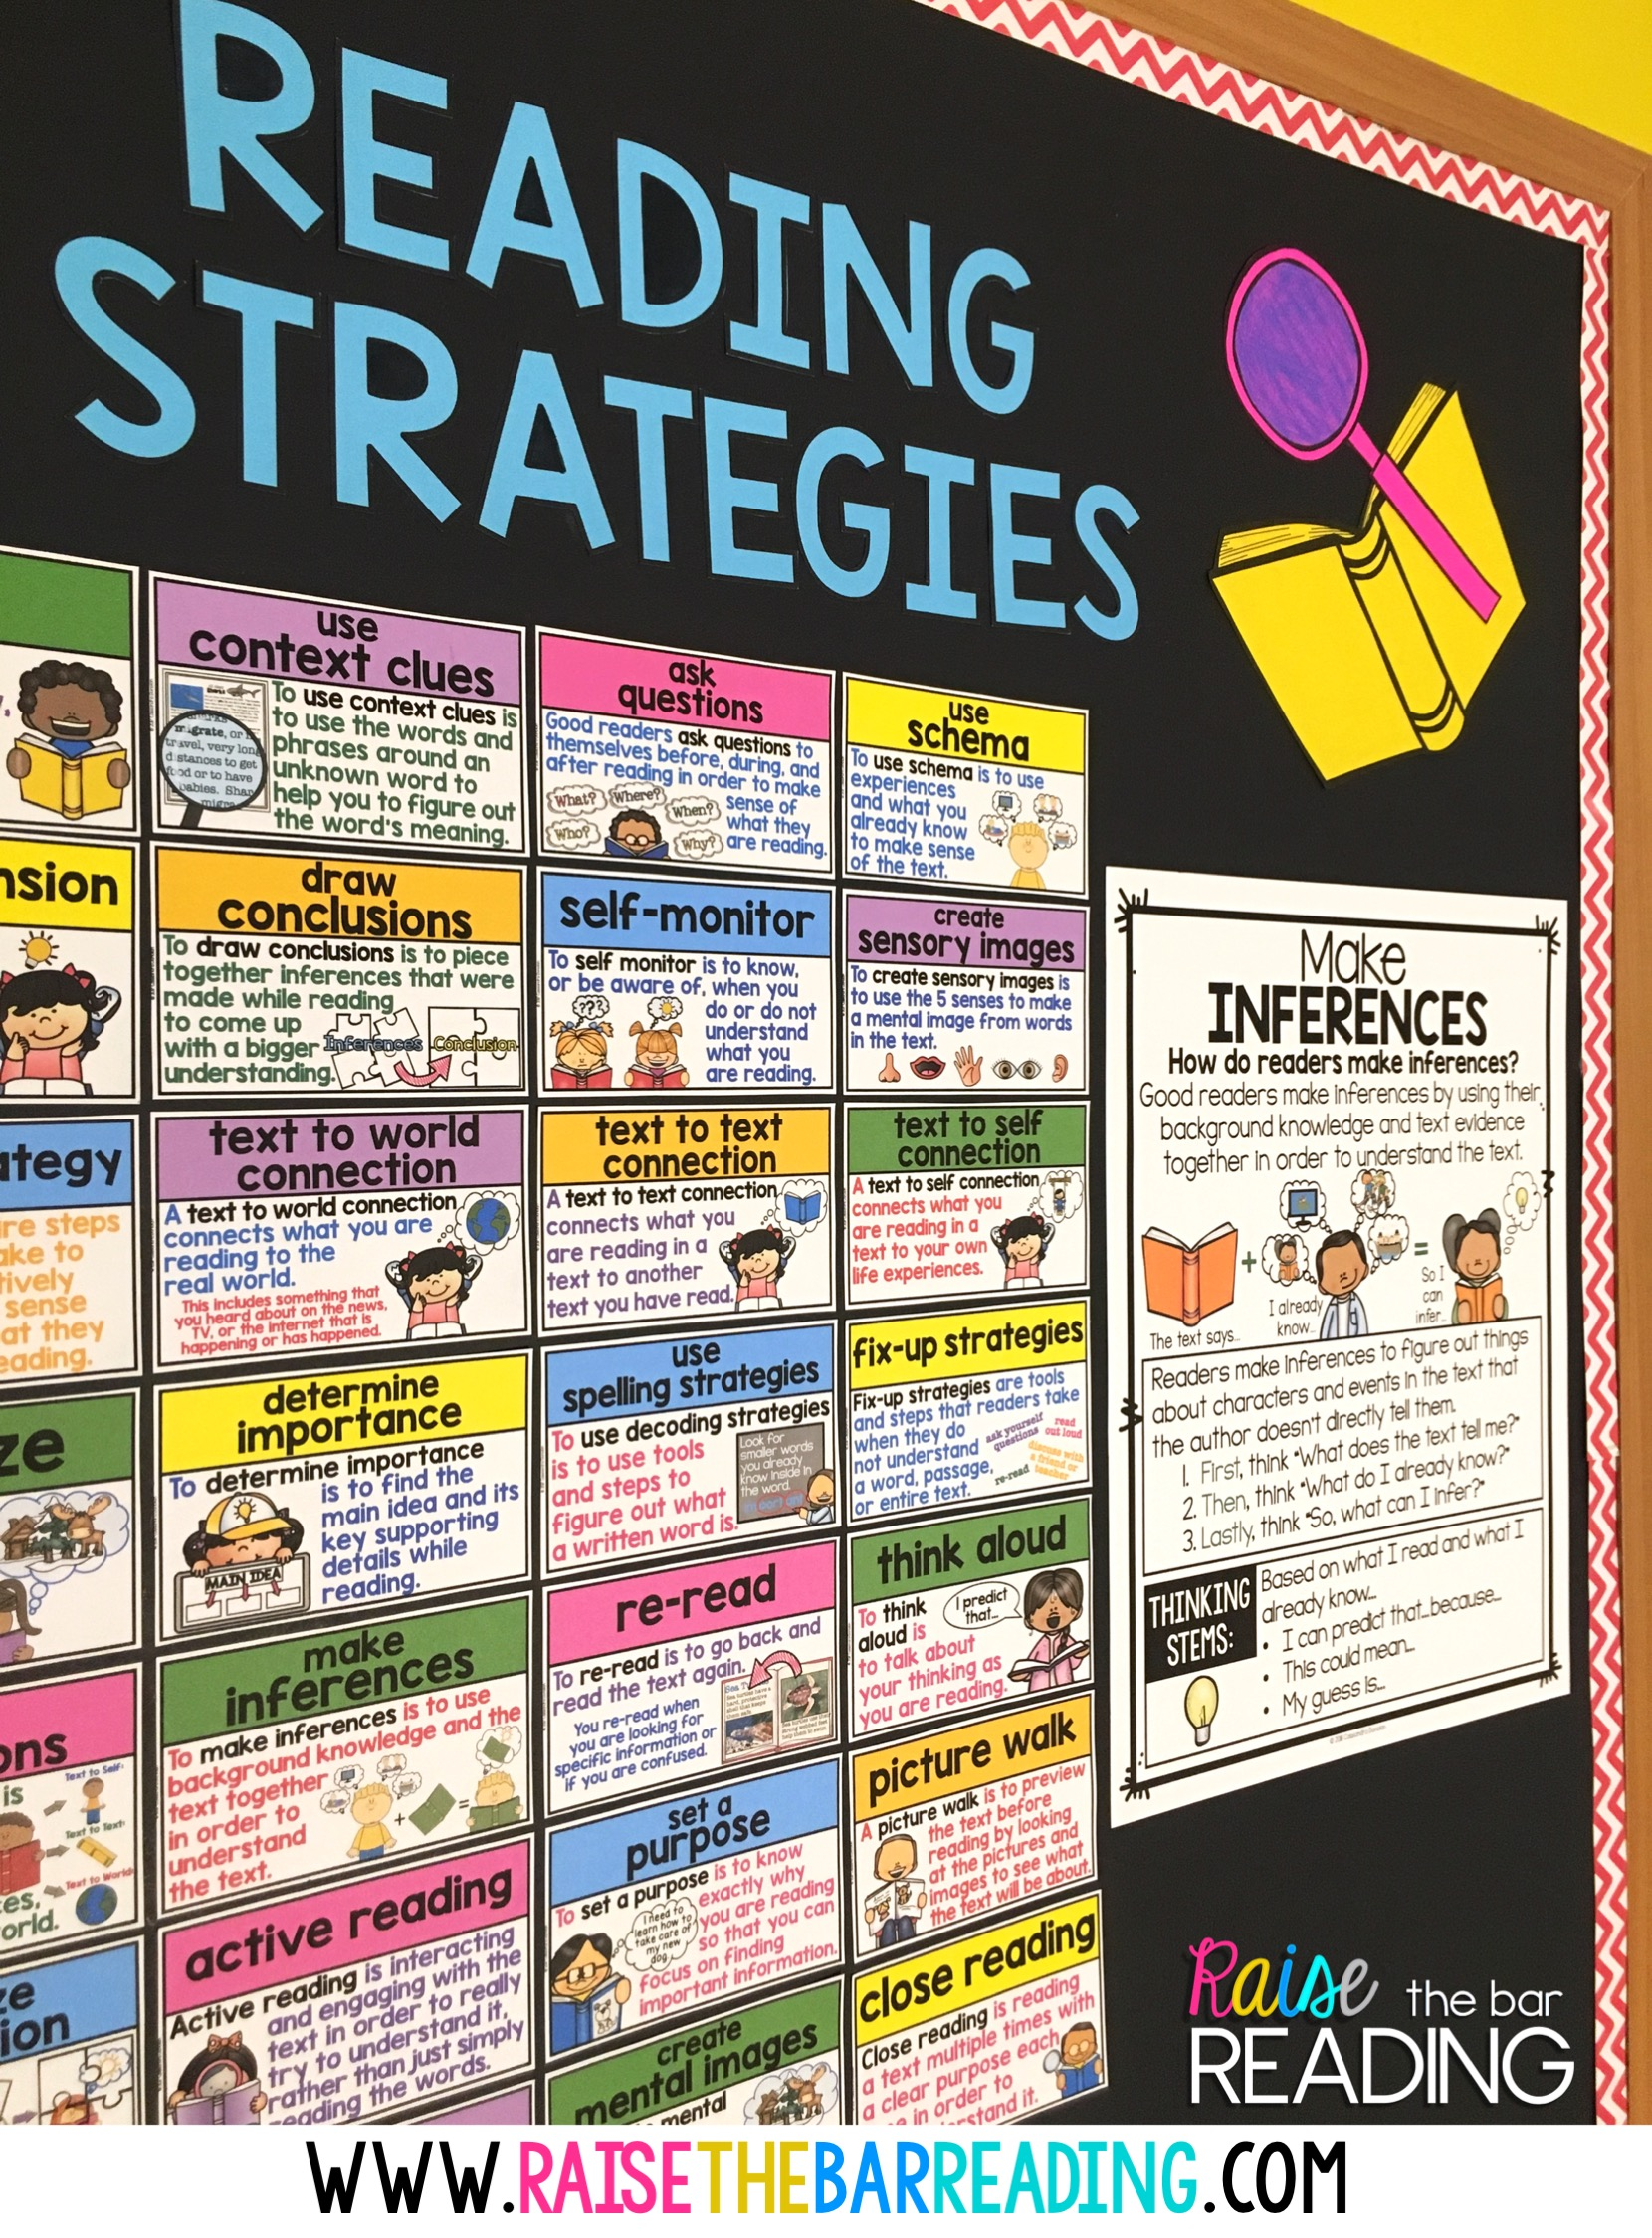 hight resolution of i have a reading strategies word wall hanging up on my wall year round but when i am about to explicitly teach one i always use a larger more detailed